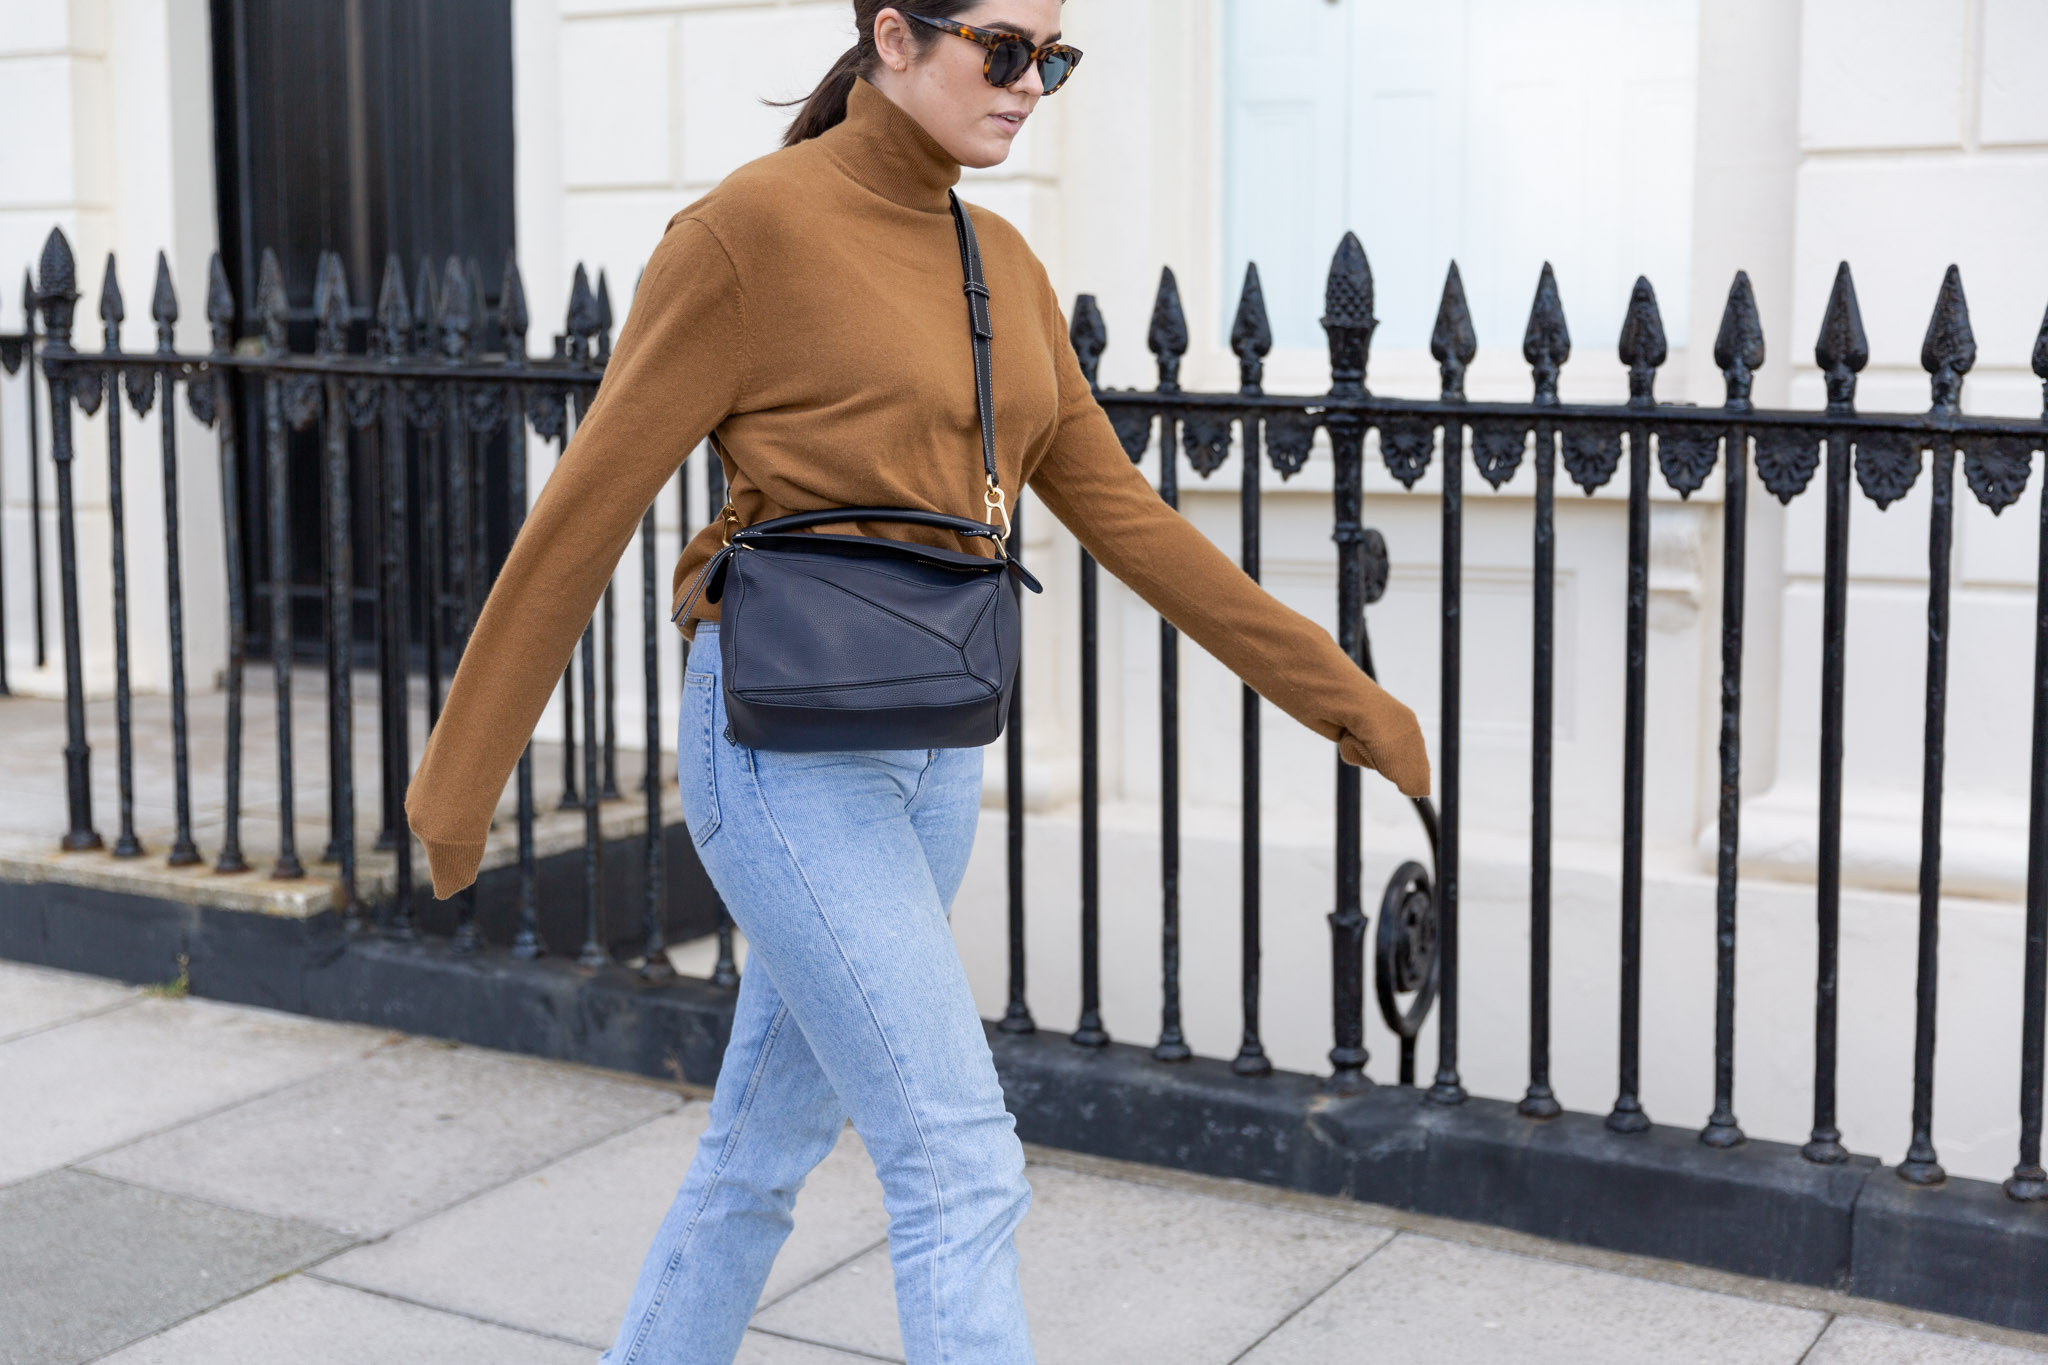 A photo of Anna walking down the street in a brown turtleneck, jeans and her Loewe bag.